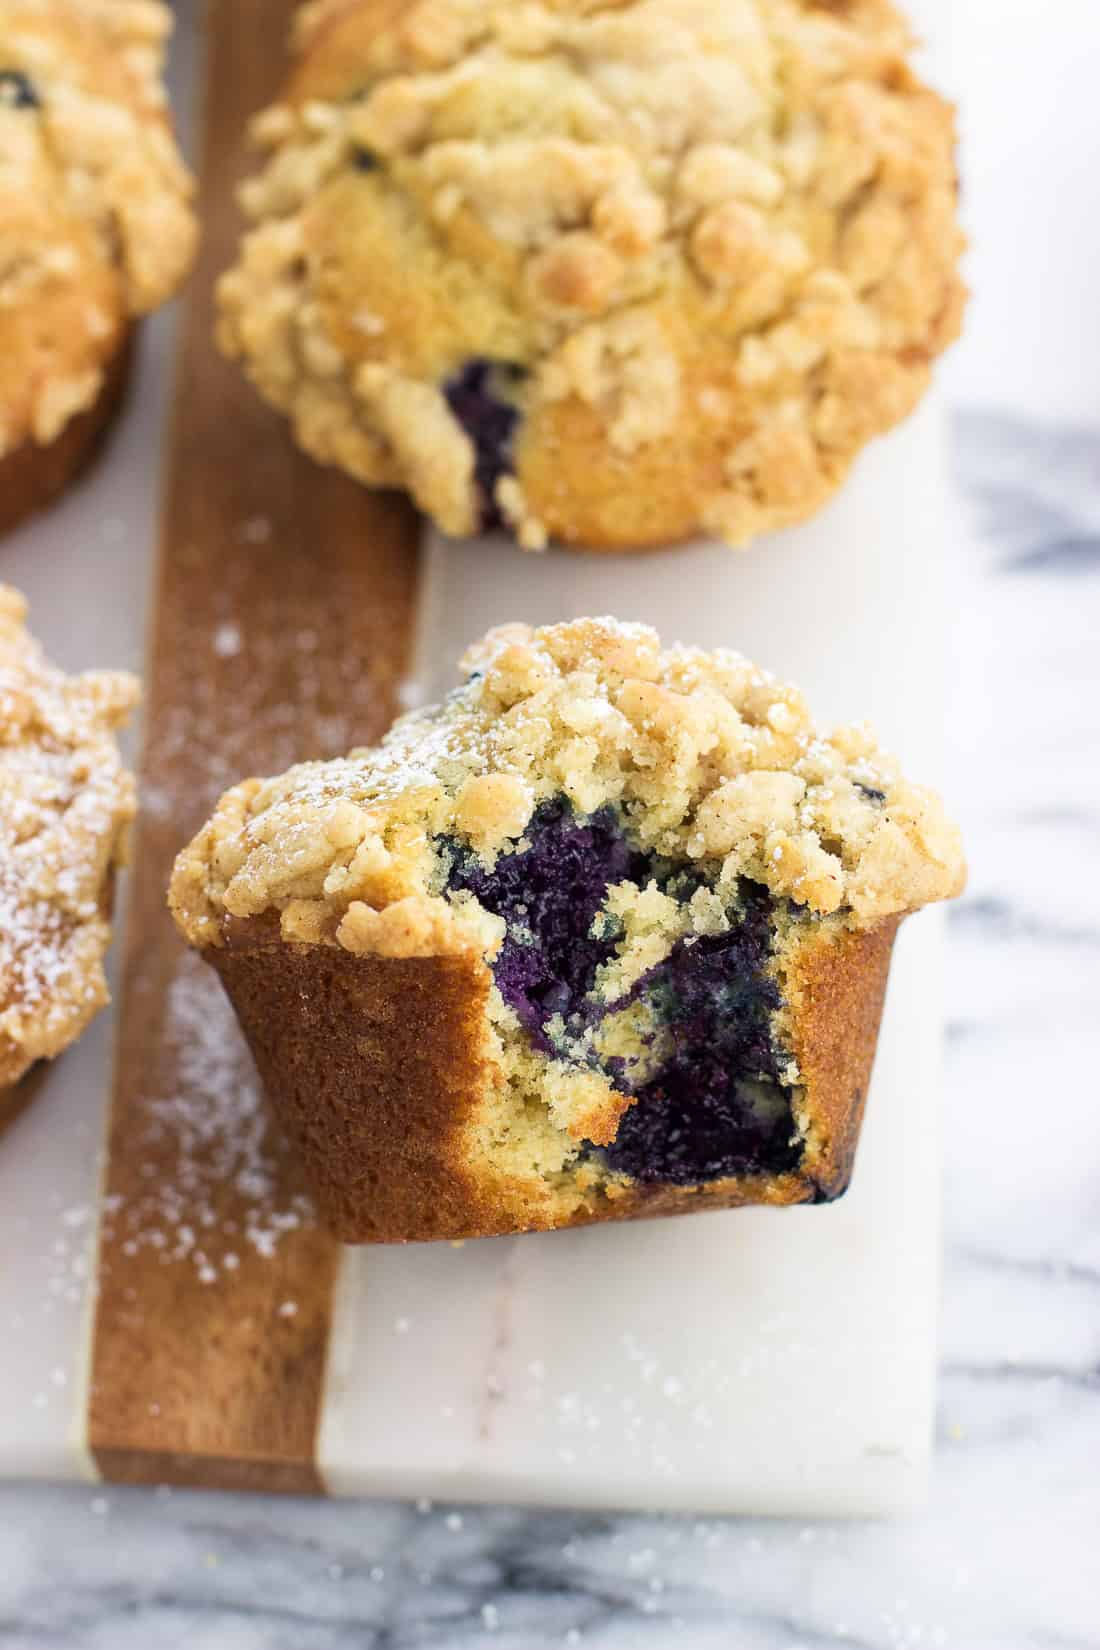 A muffin on a marble serving board dusted with powdered sugar with a big bite taken out of it